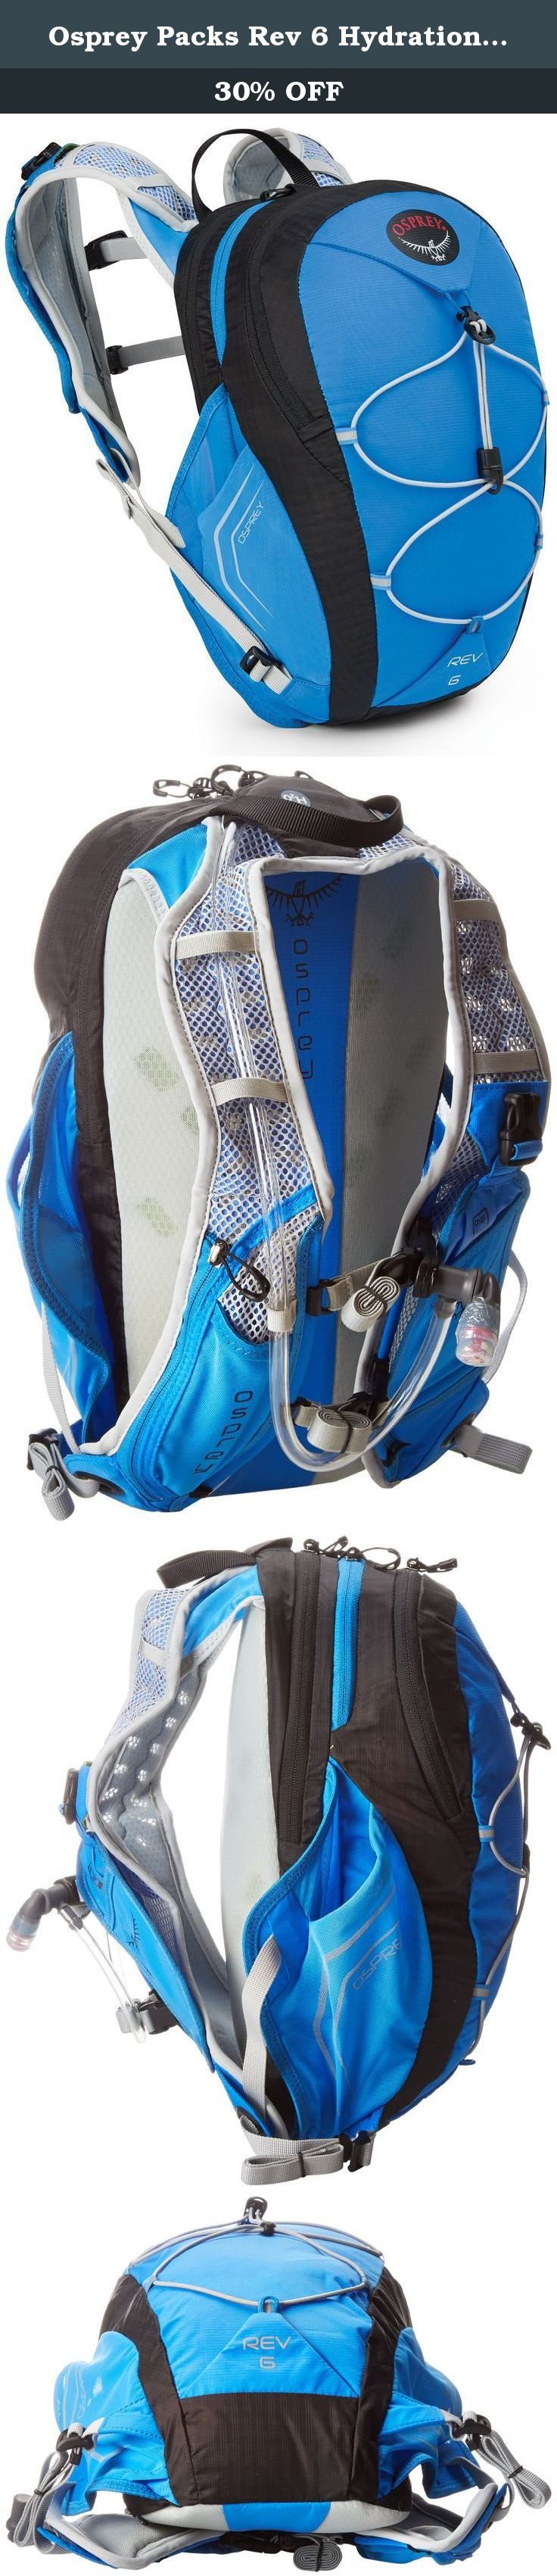 Biking Deuter 32133 71300 Race EXP Air with 3 Liter Reservoir-Perfect for Hiking Offroad and Motorcycling Hunting